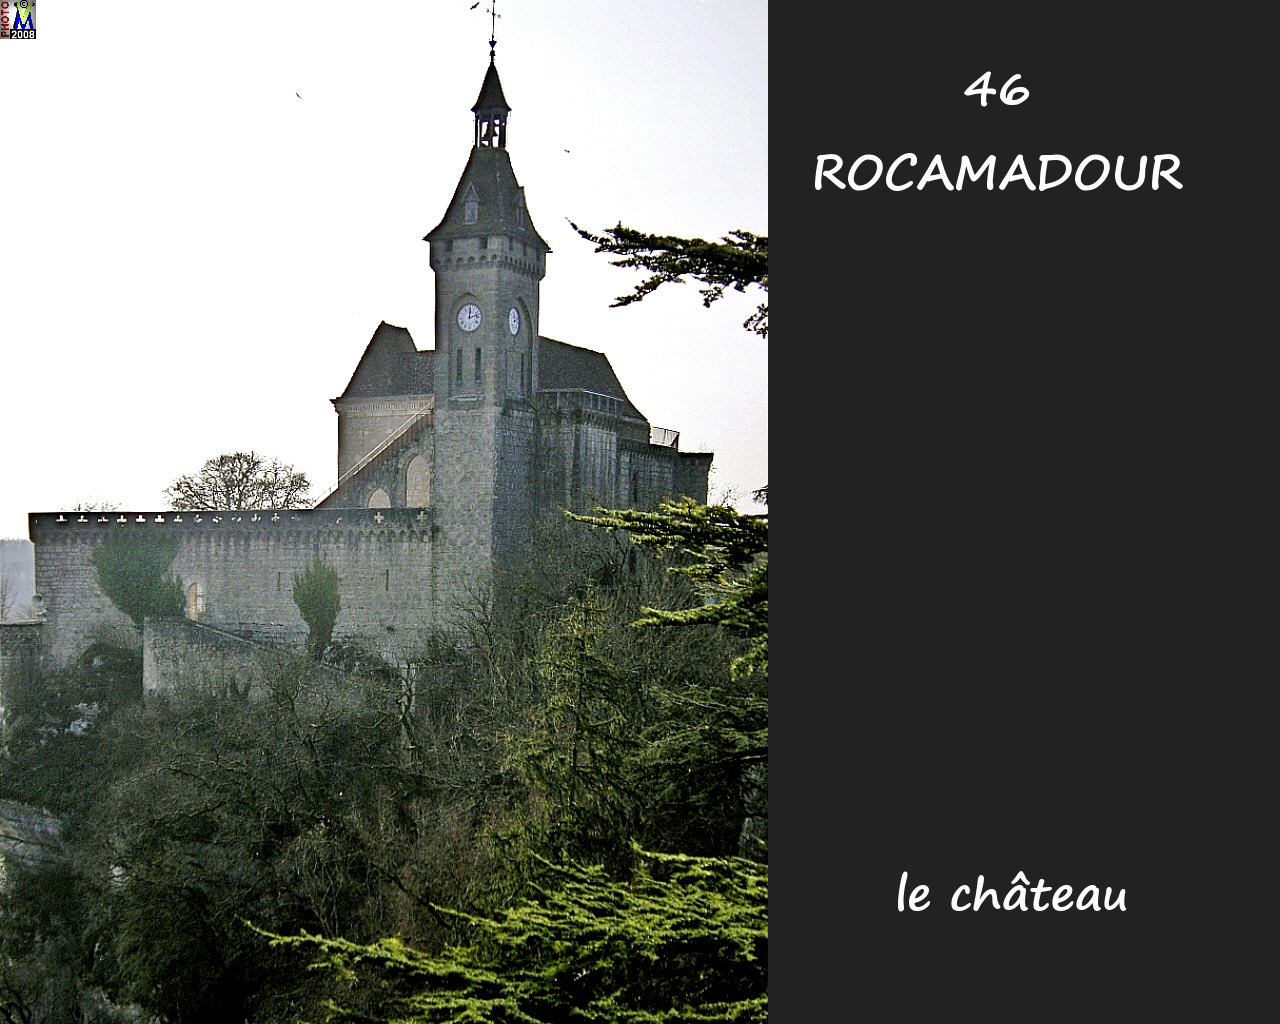 46ROCAMADOUR_chateau_106.jpg